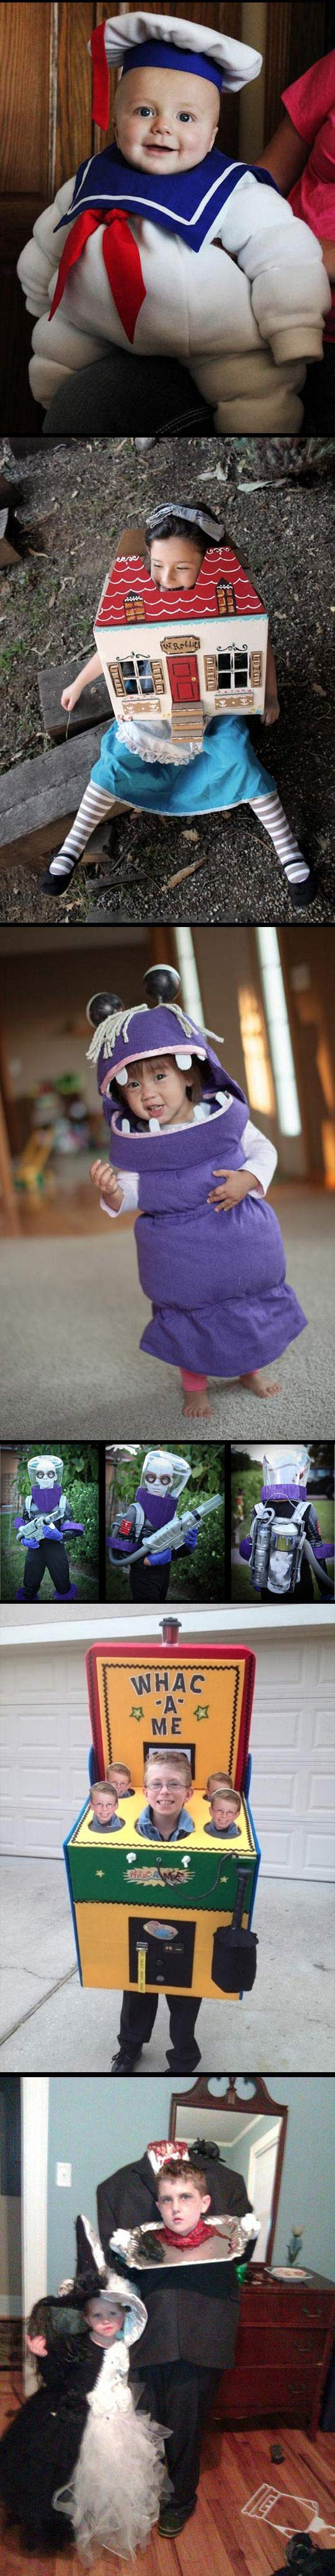 funny-picture-kids-halloween-costume-baby